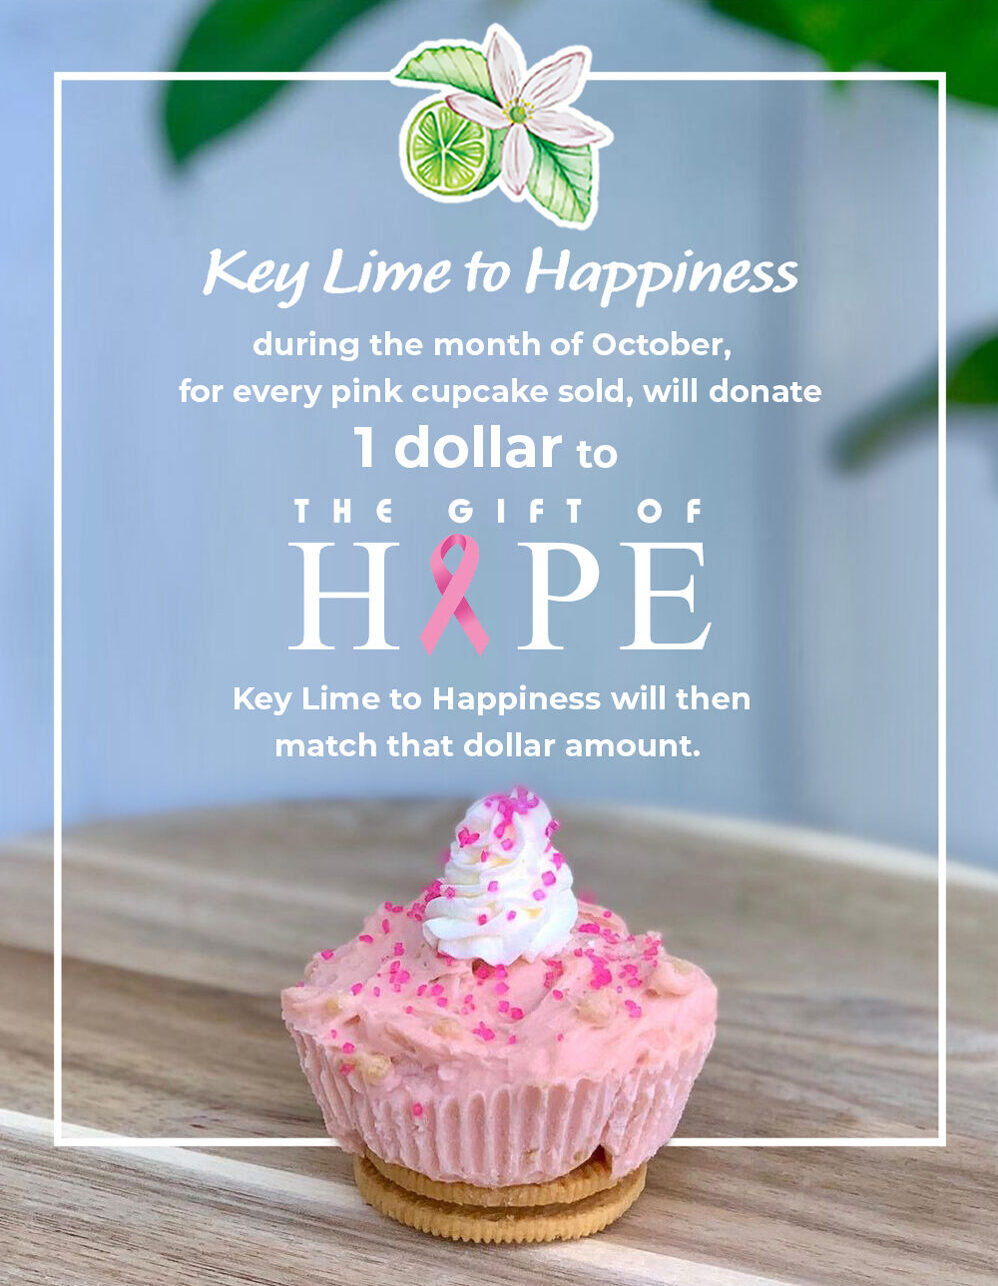 Key Lime to Happiness - Fundraiser for the Gift of Hope